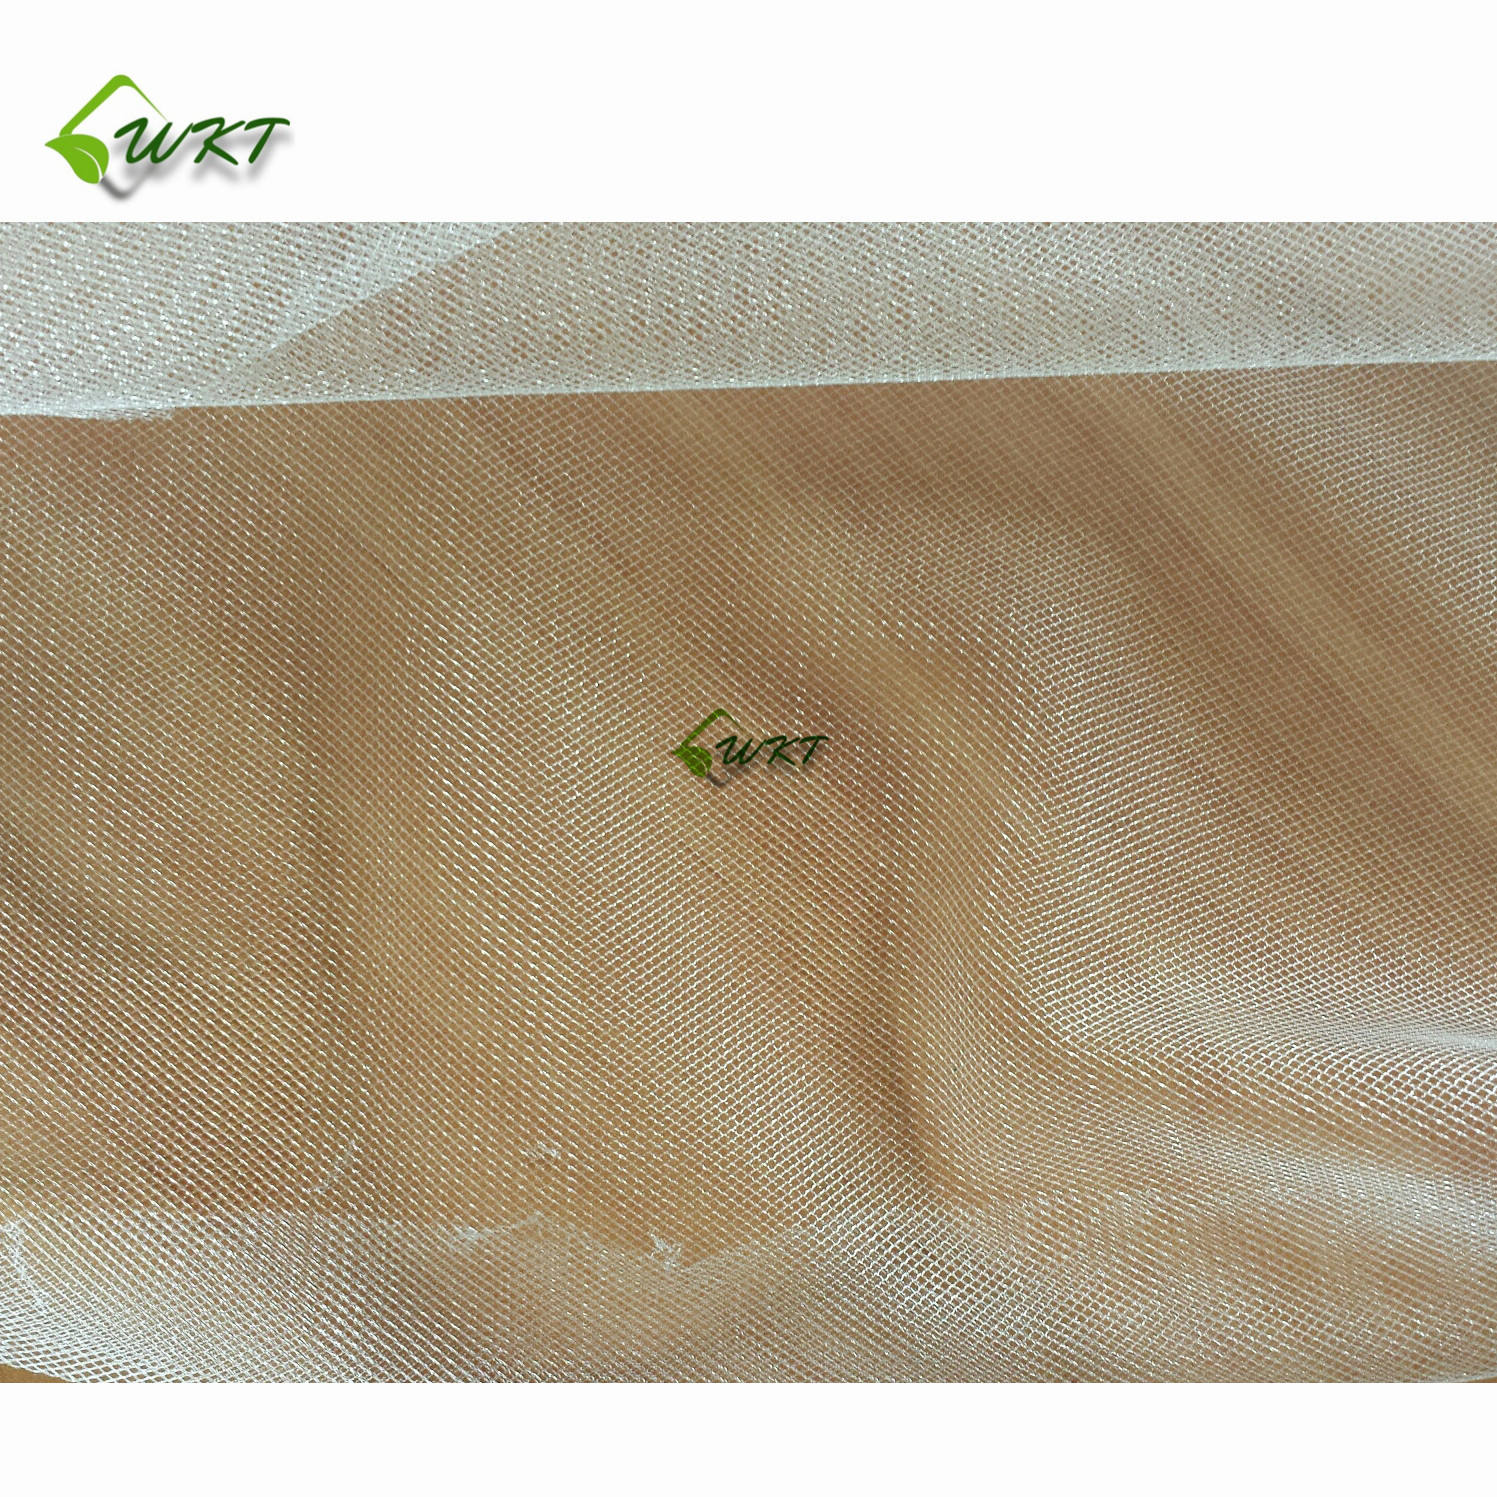 agriculture virgin HDPE insect proof net/anti insect net